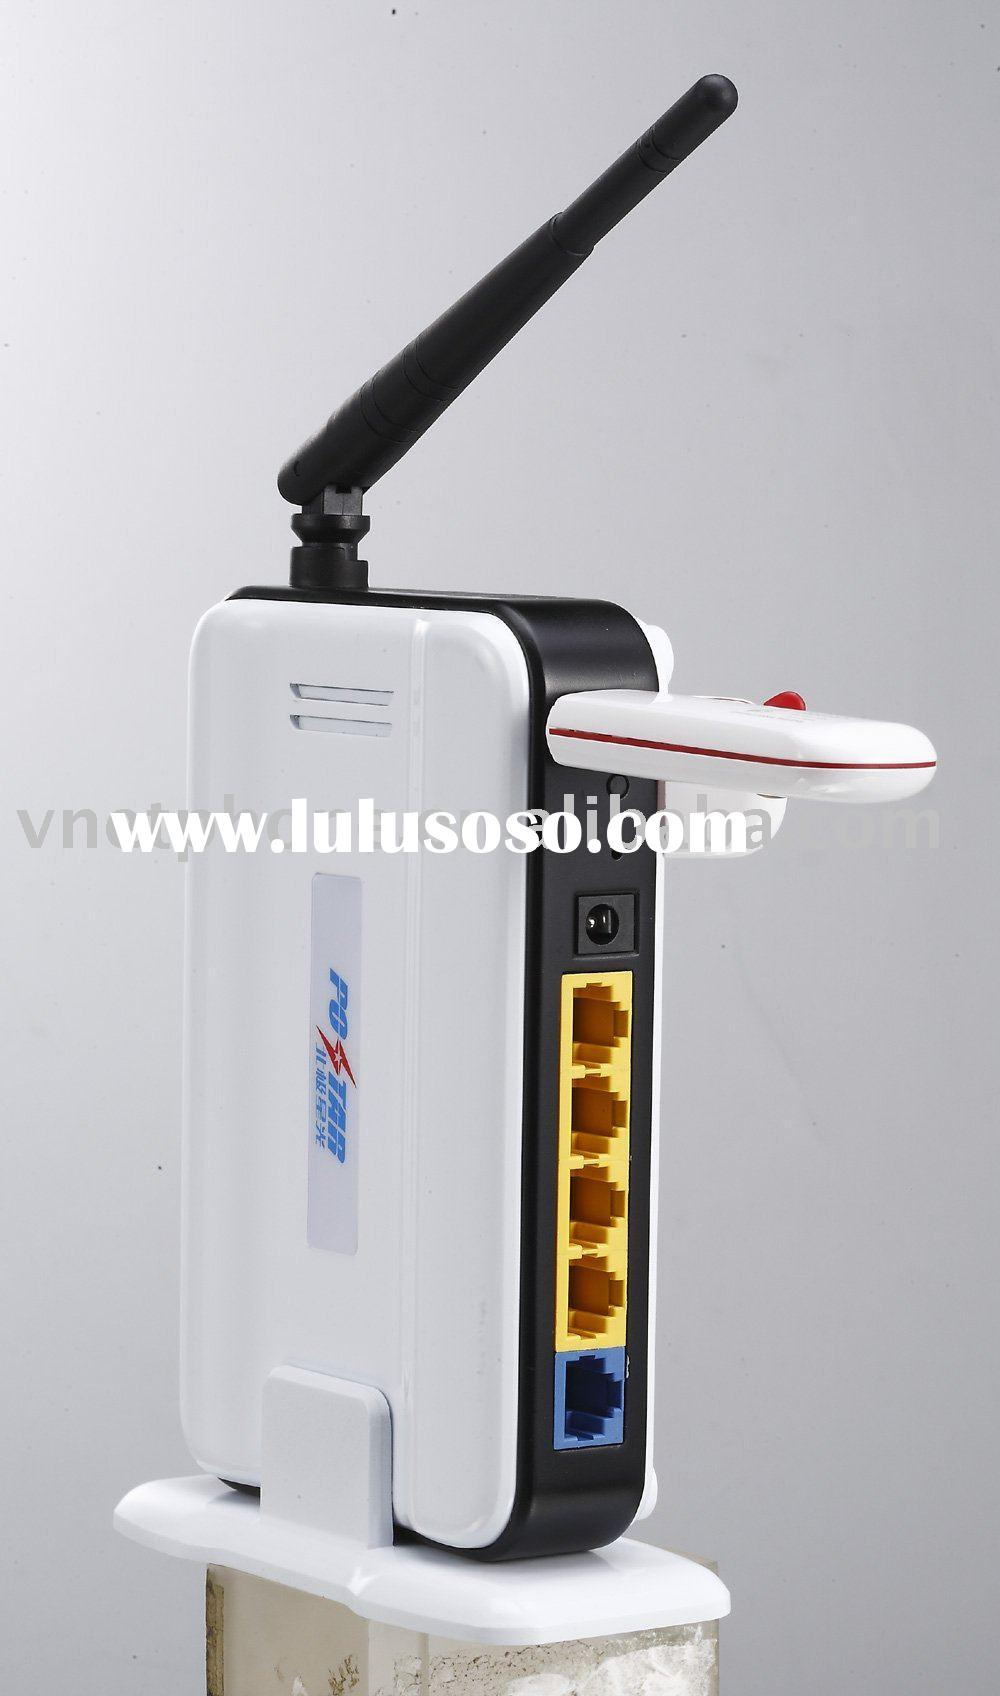 Support USB 3G modem card 3G+11N Wireless Router